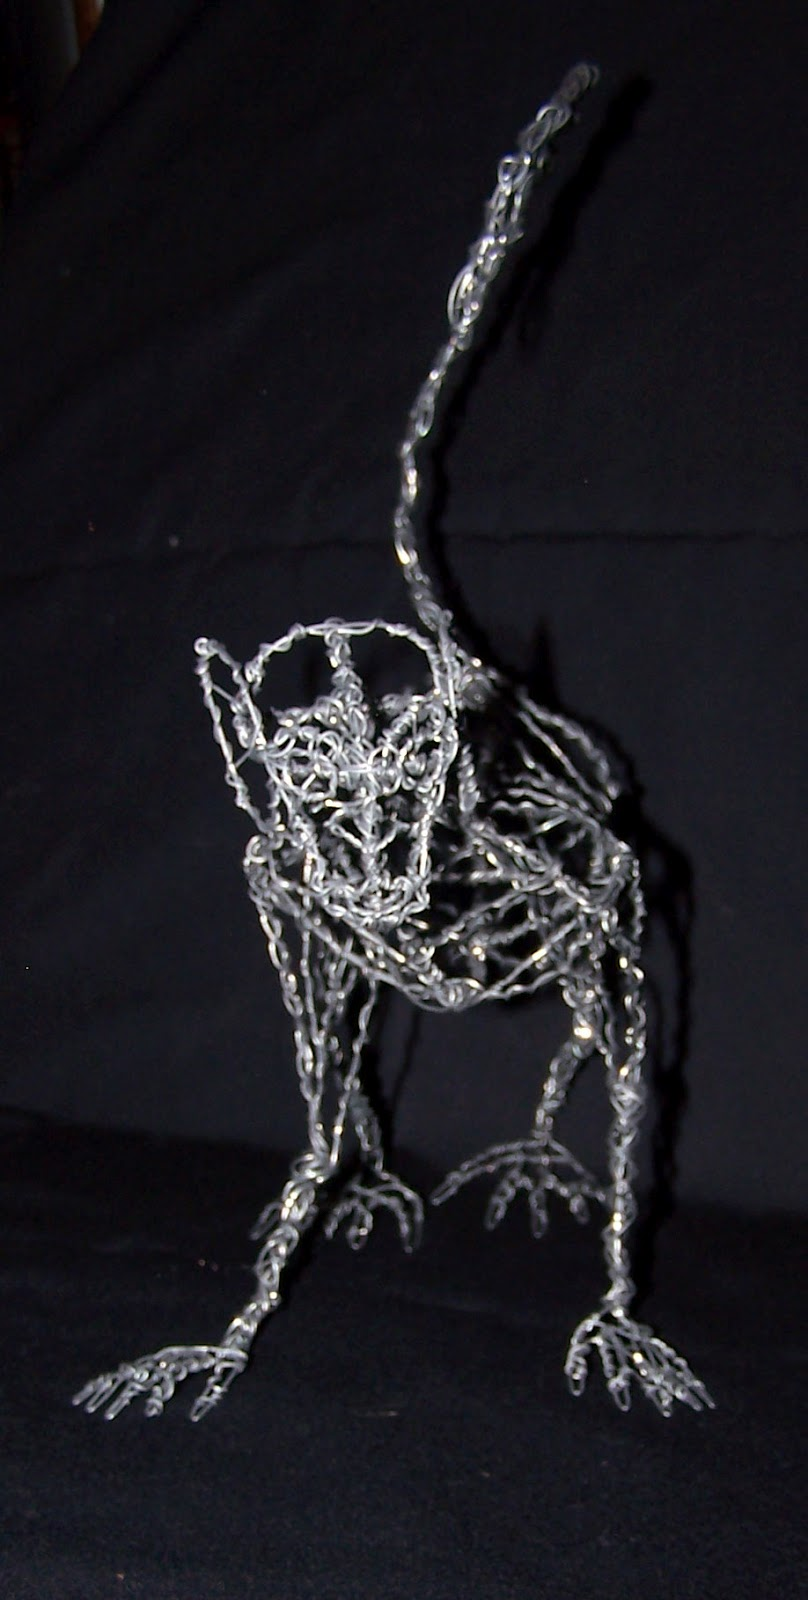 Monkey Made Of Wire - WIRE Center •